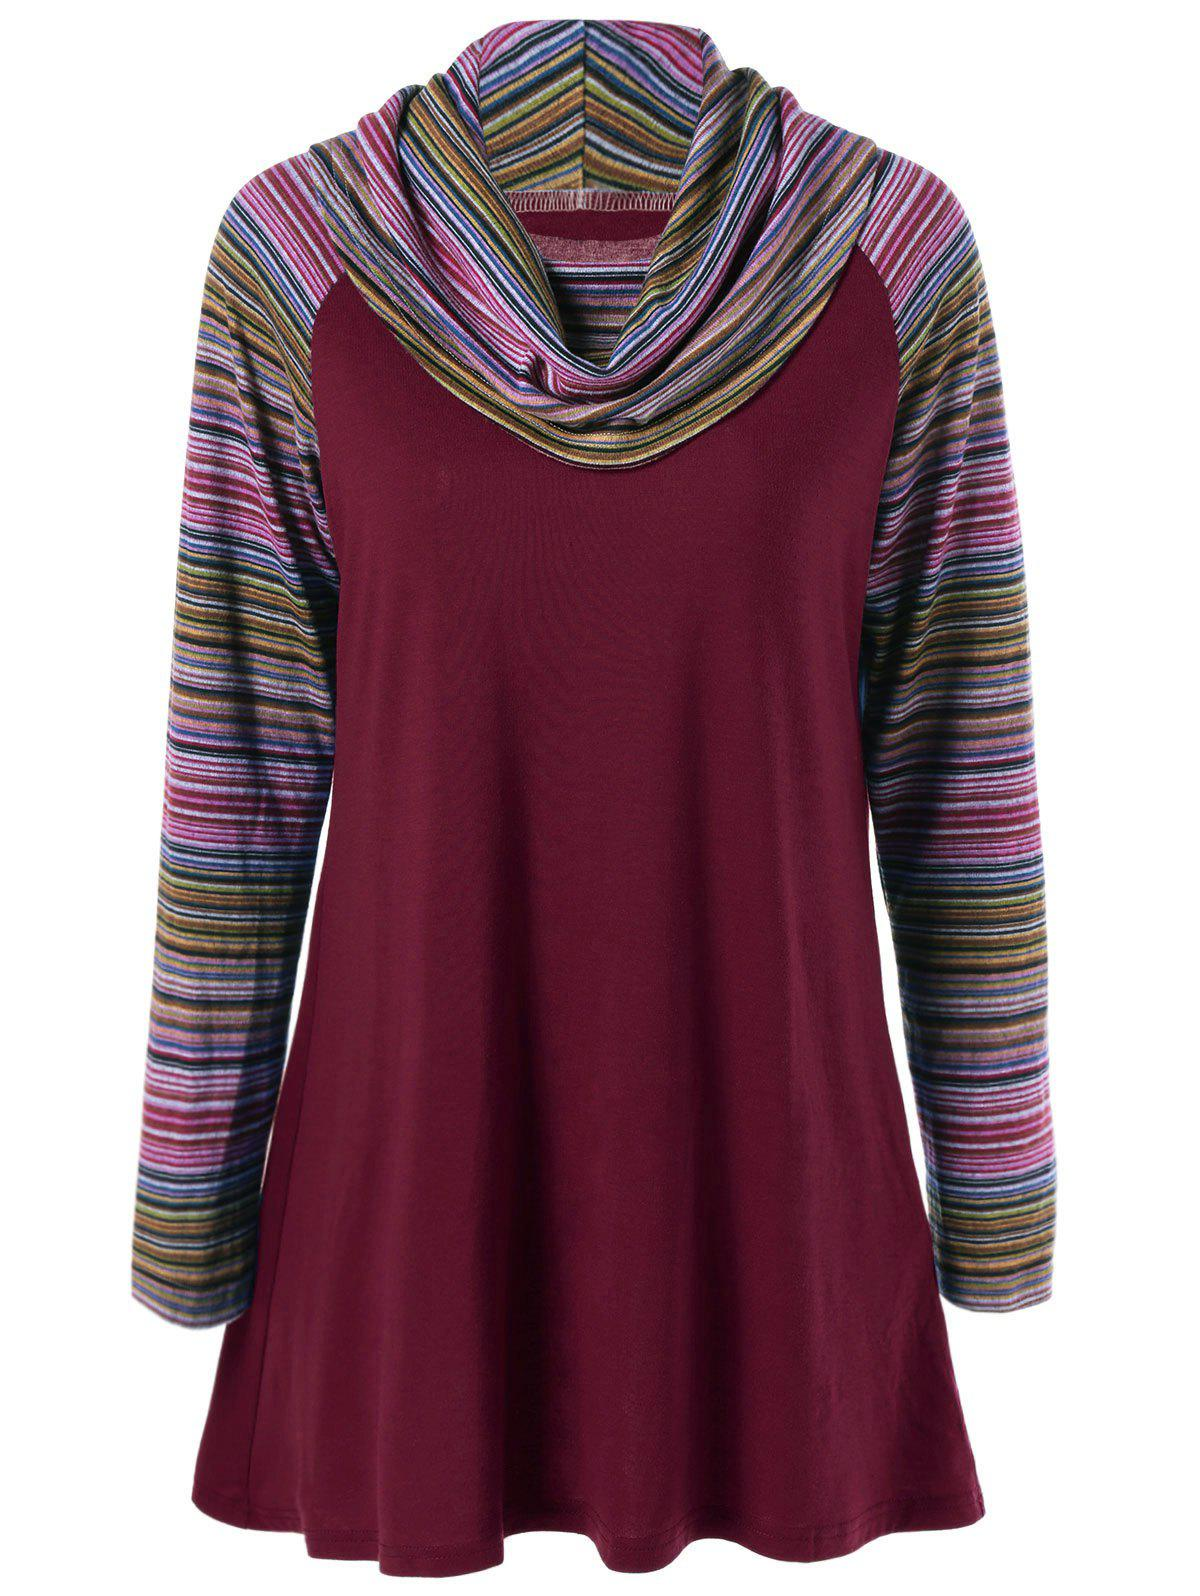 Cowl Neck Colorful Striped T-ShirtWOMEN<br><br>Size: M; Color: WINE RED; Material: Polyester; Sleeve Length: Full; Collar: Cowl Neck; Style: Streetwear; Pattern Type: Striped; Season: Fall,Spring,Winter; Weight: 0.370kg; Package Contents: 1 x T-Shirt;